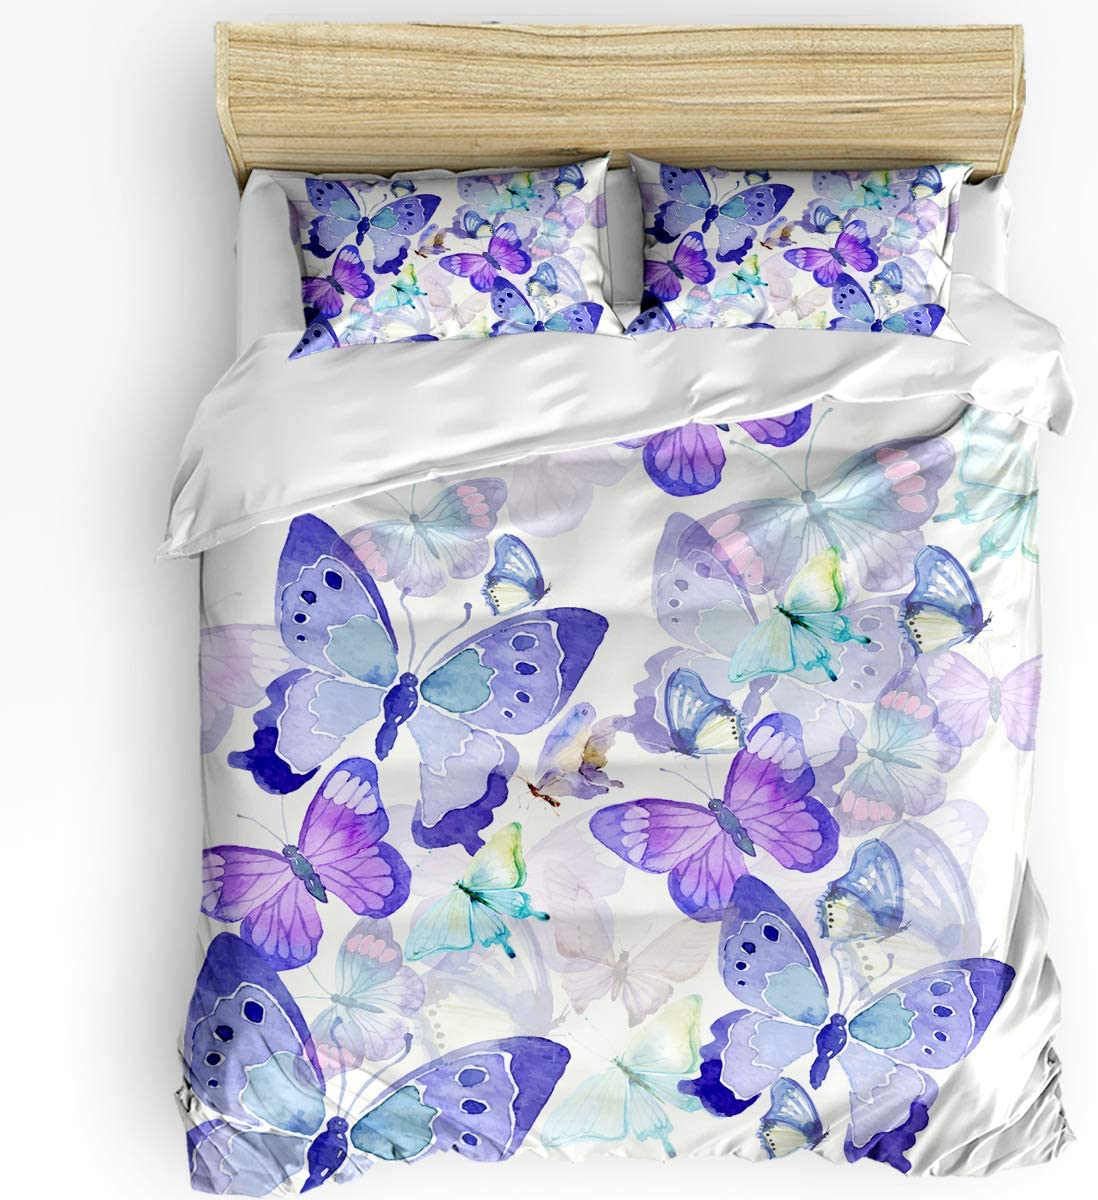 California King In a Minneapolis Mall popularity 3 Pieces Bedding Set Dazzling Colorf Cover Duvet